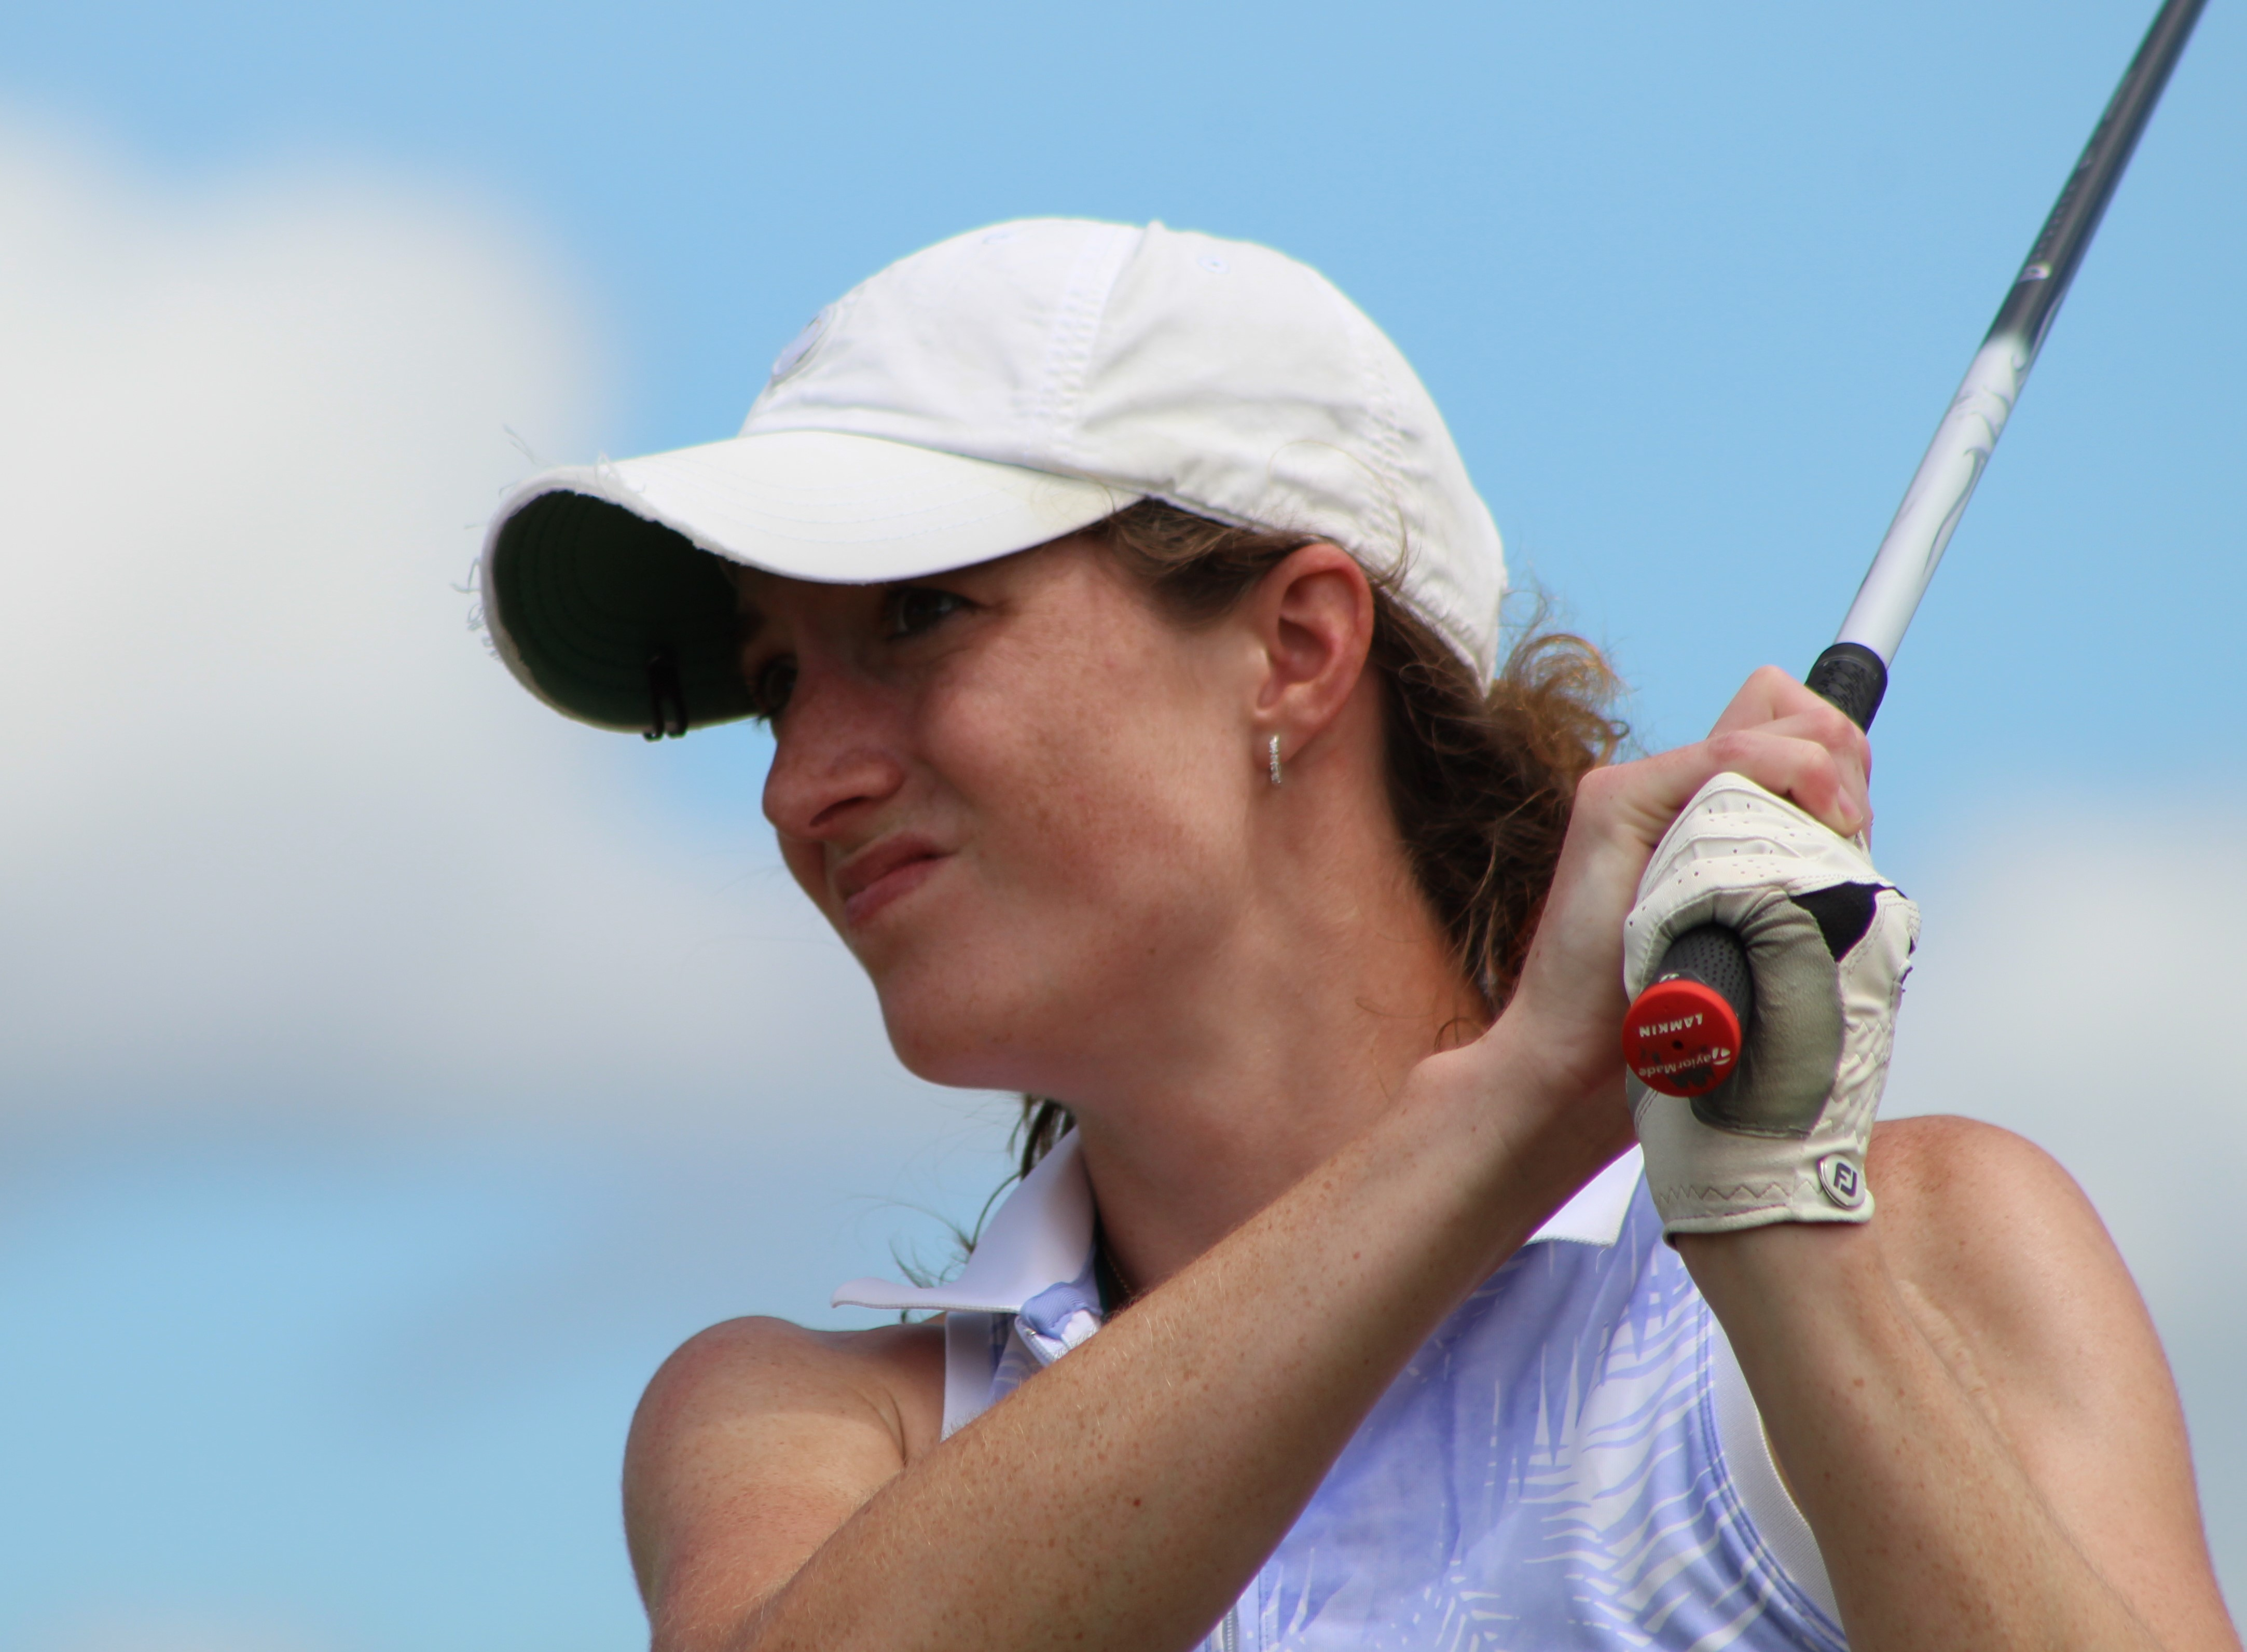 TROY BERNARD LEADS THE 20TH LGA NET AMATEUR | CATHERINE HODSON LEADS LGA WOMEN'S NET AMATEUR